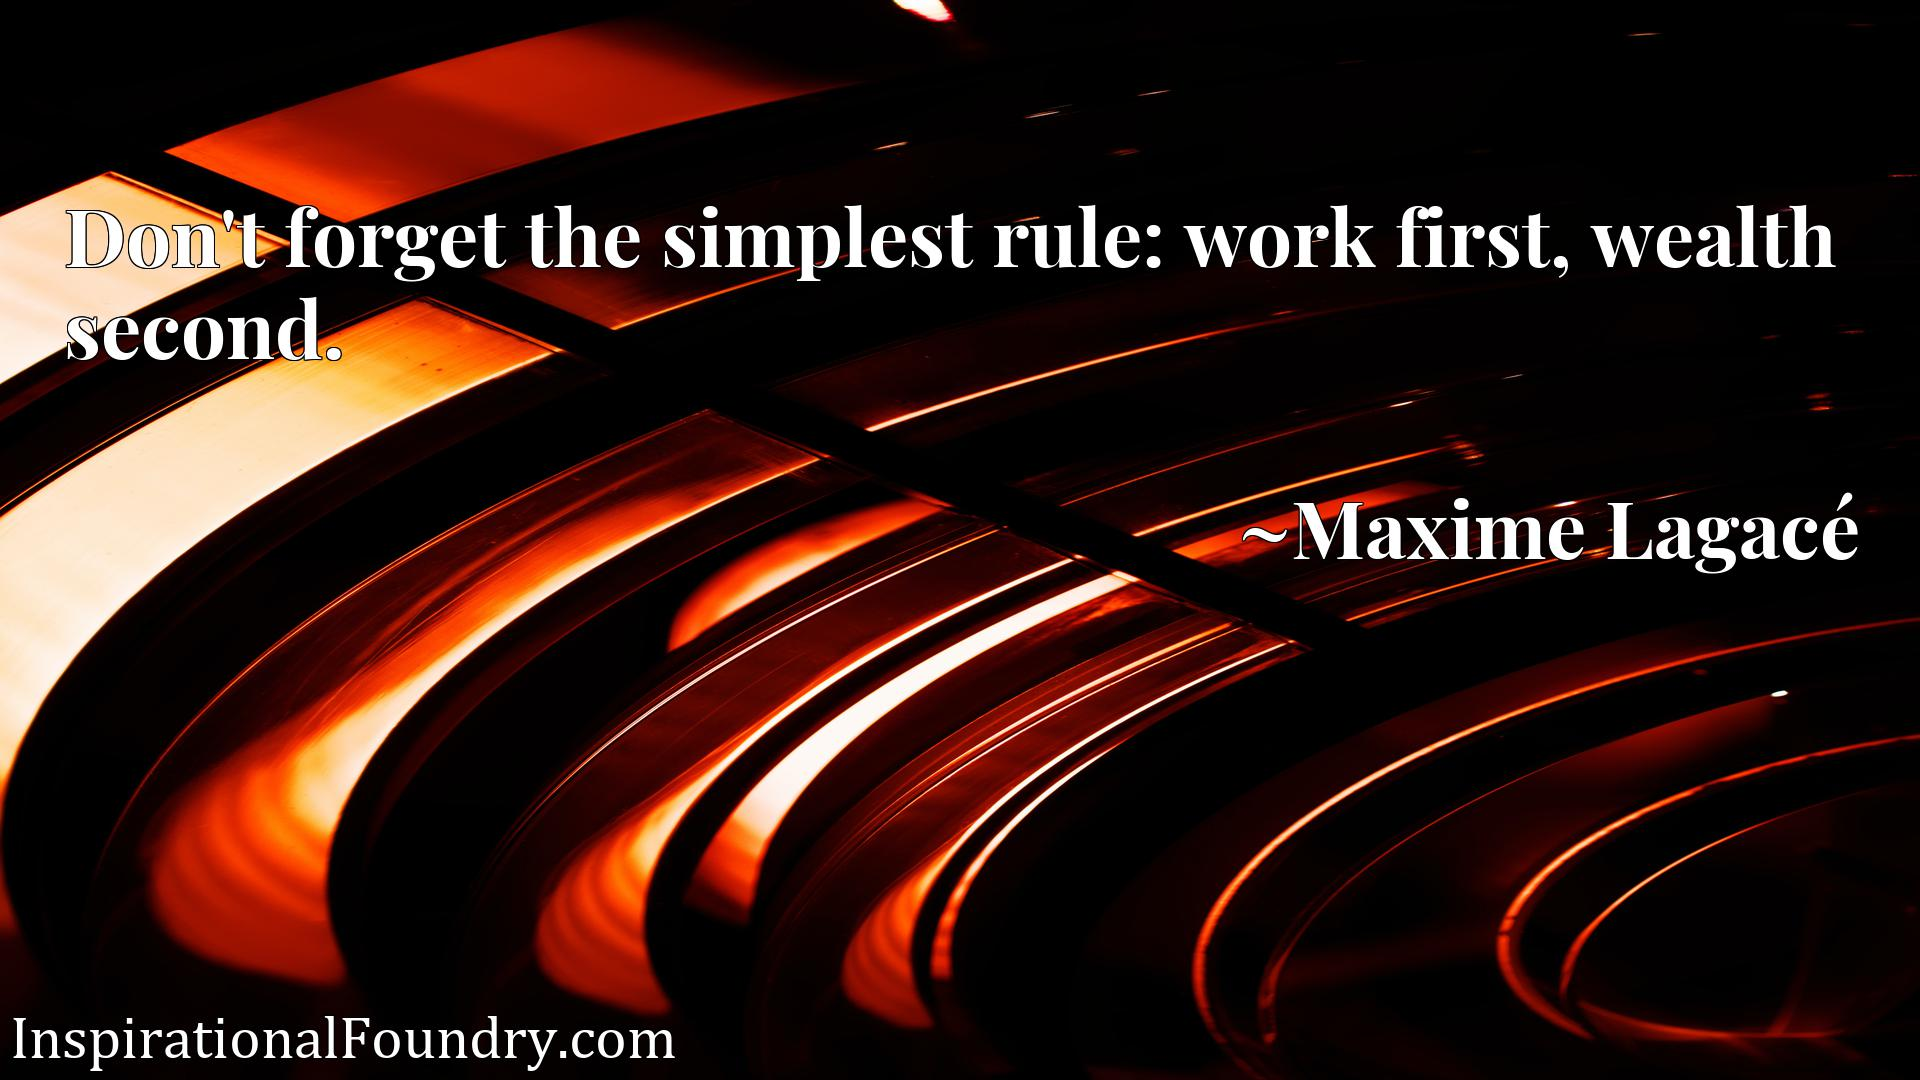 Don't forget the simplest rule: work first, wealth second.